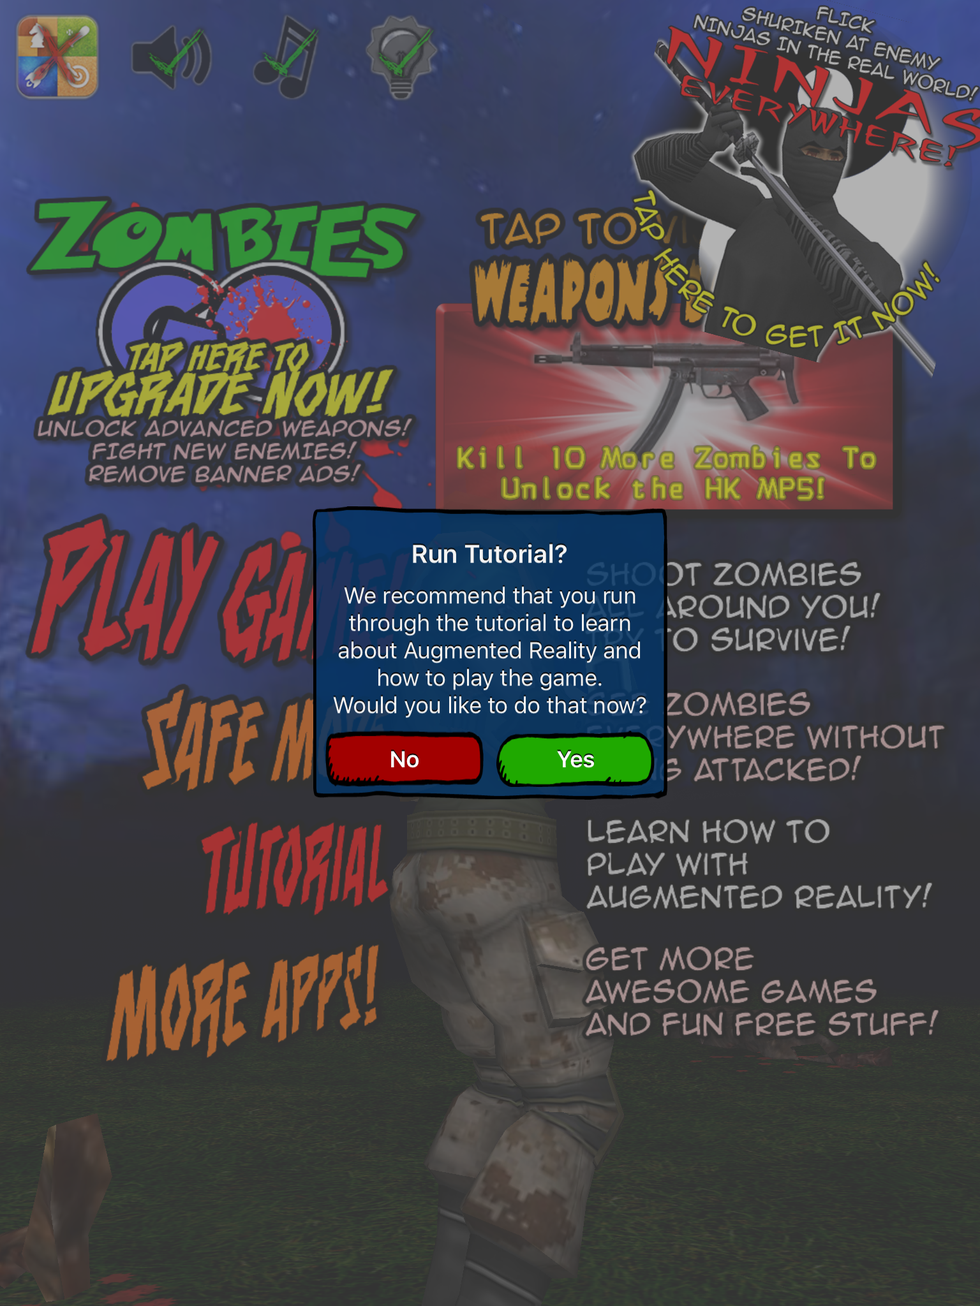 Review: Kill zombies in augmented reality with Zombies GO